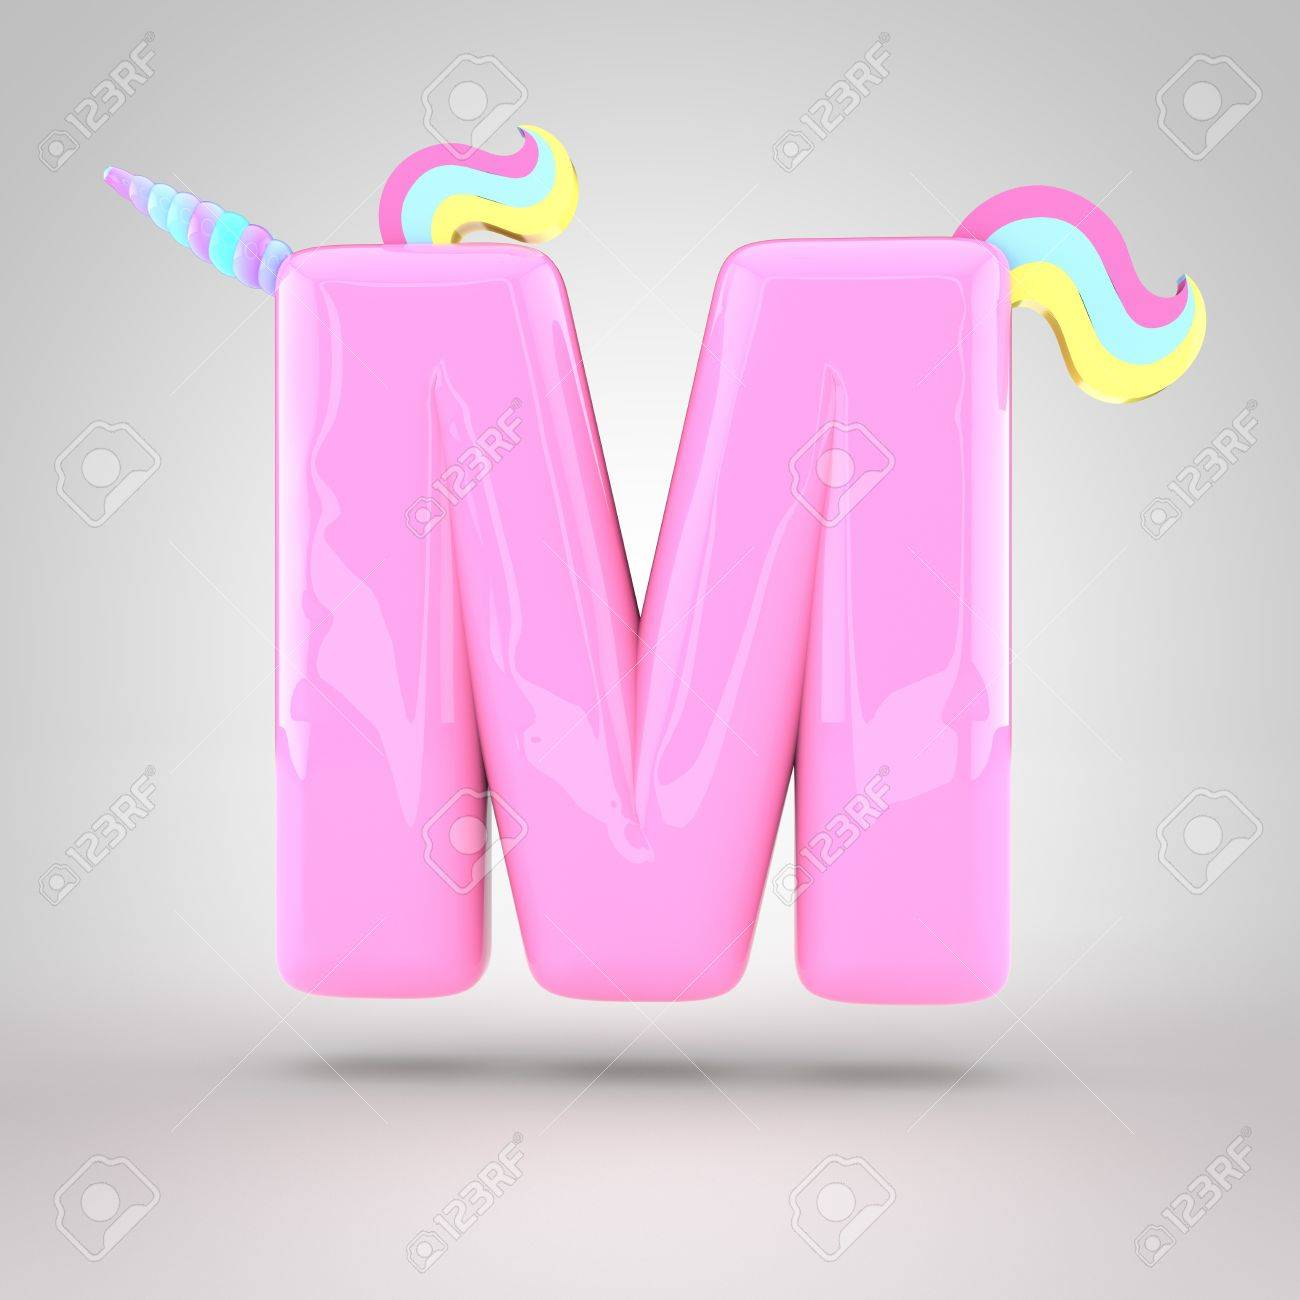 cute unicorn pink letter m uppercase with different colors horn mane and tail 3d